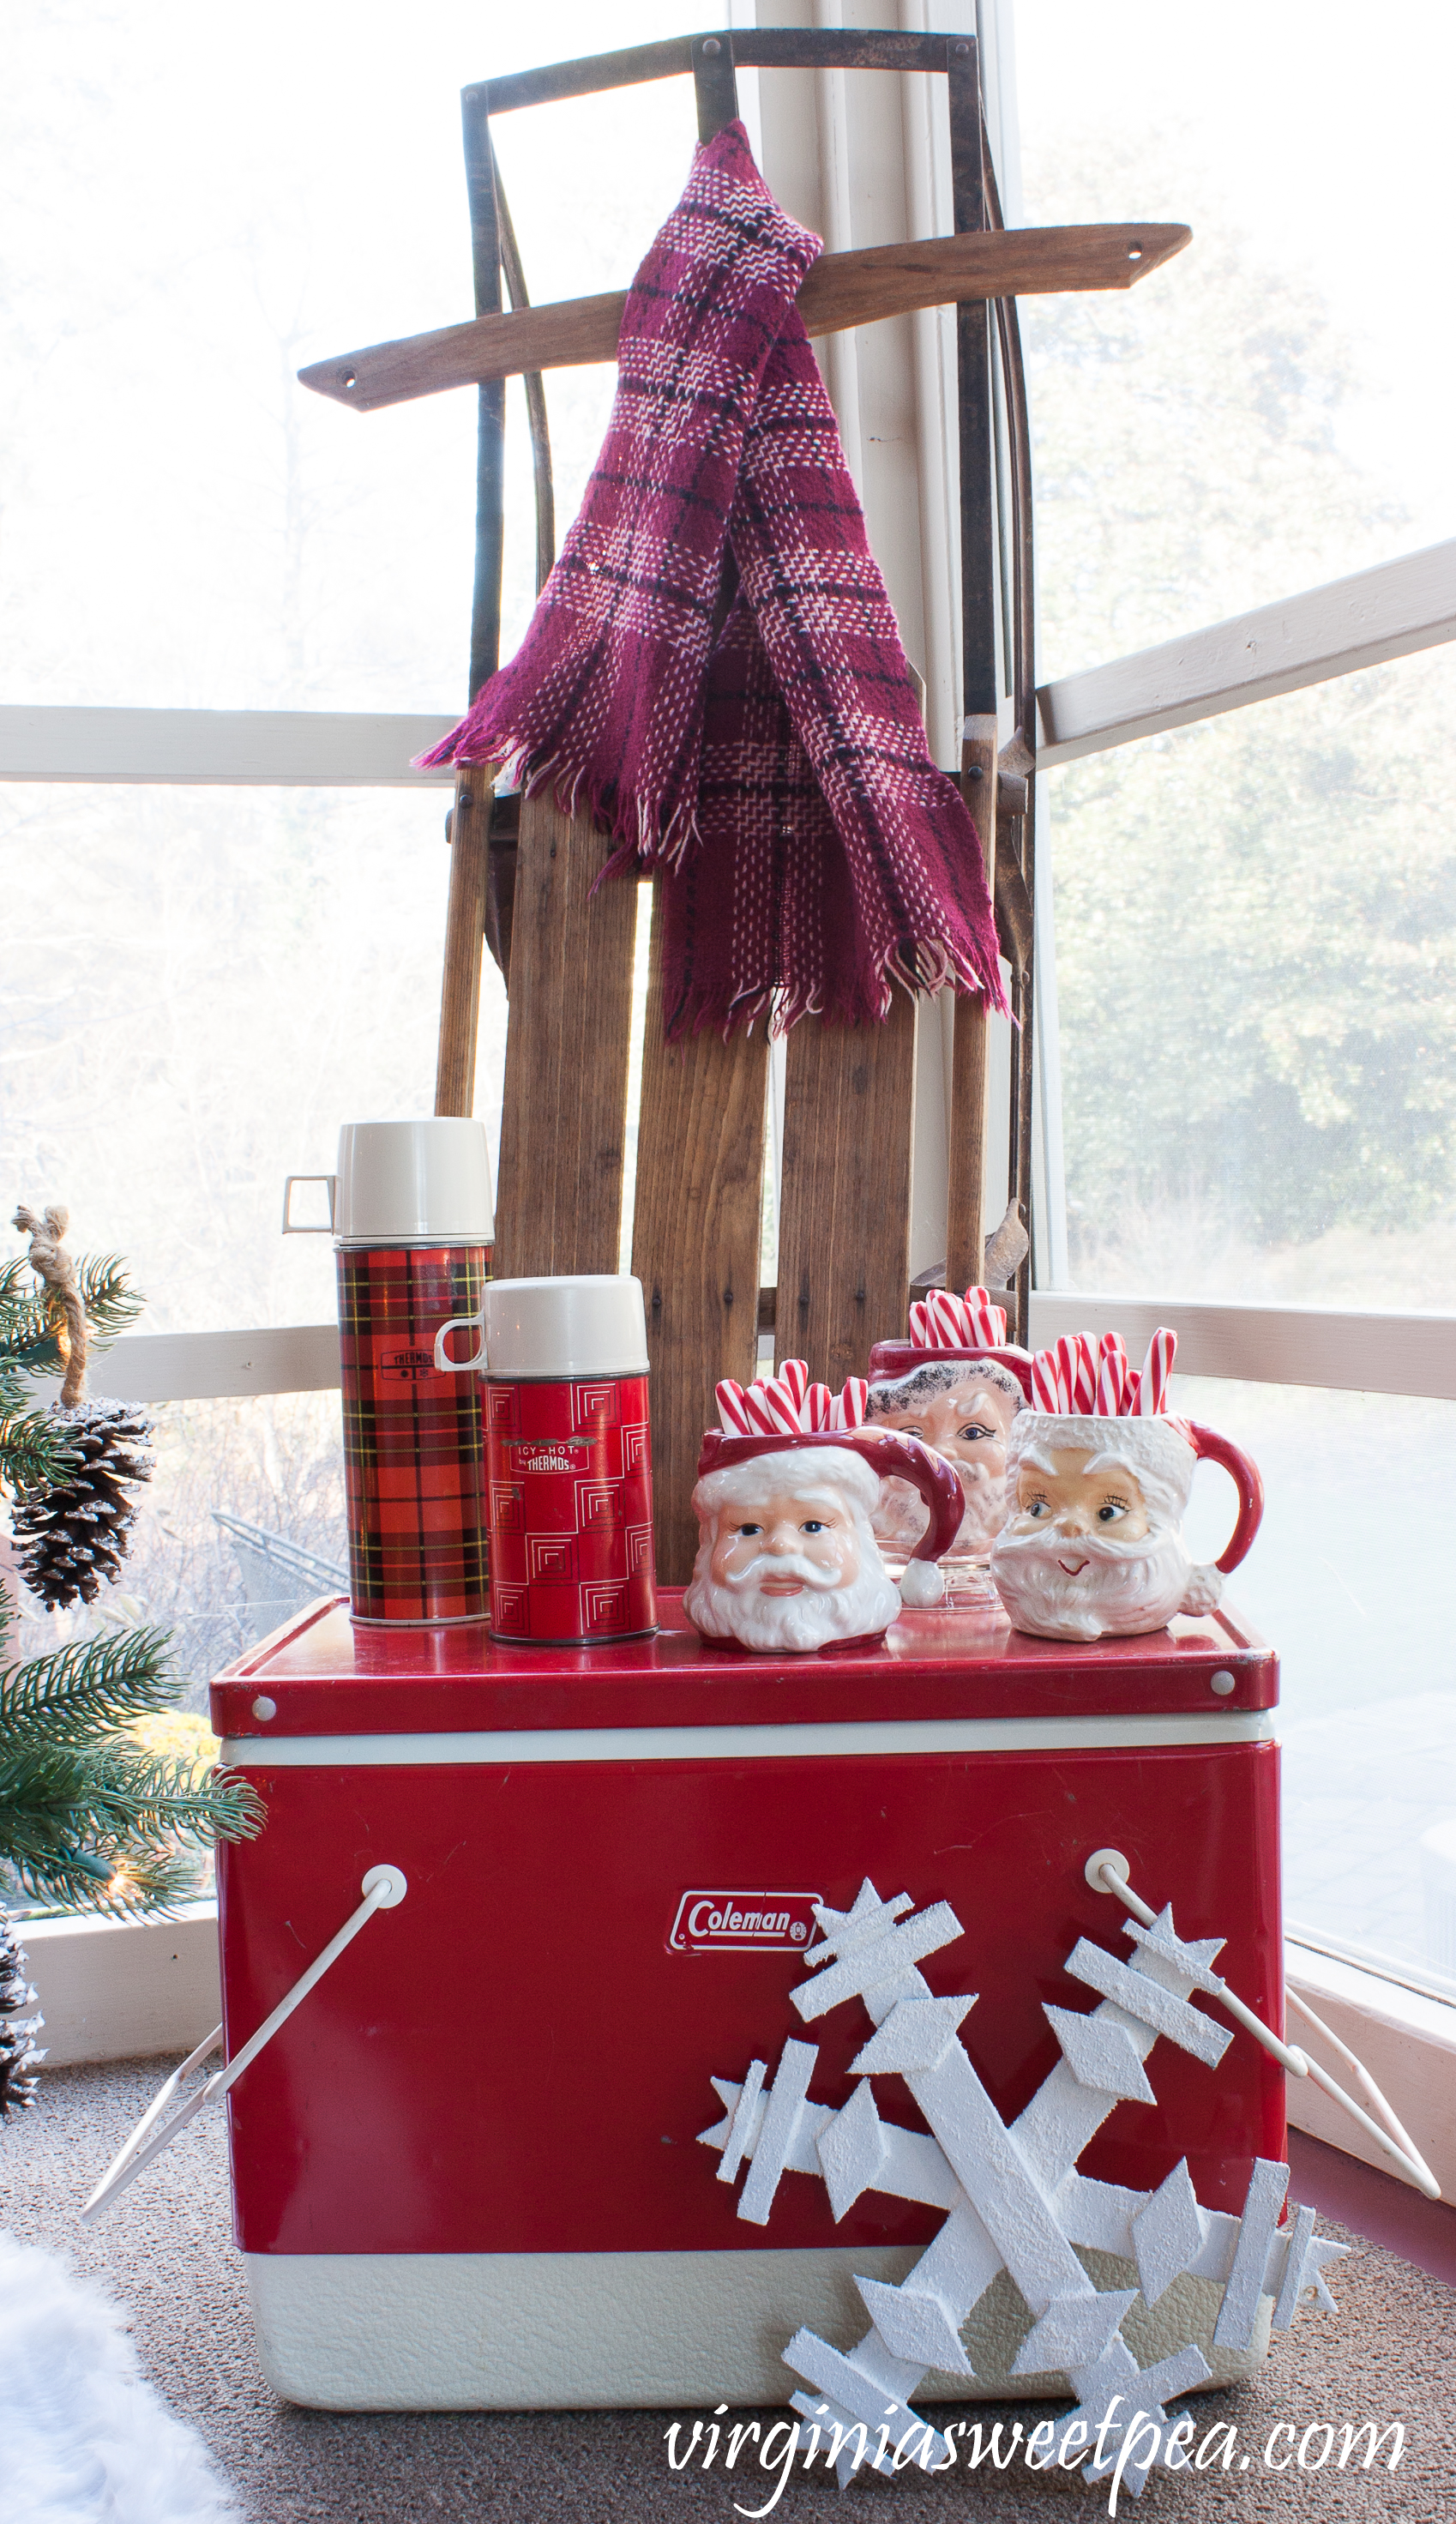 Christmas Porch Vignette - A vintage Coleman cooler is topped with vintage thermoses and Santa mugs. A vintage sled is adorned with a vintage scarf. #christmas #christmasdecorations #christmasporch #vintage #vintagechristmas